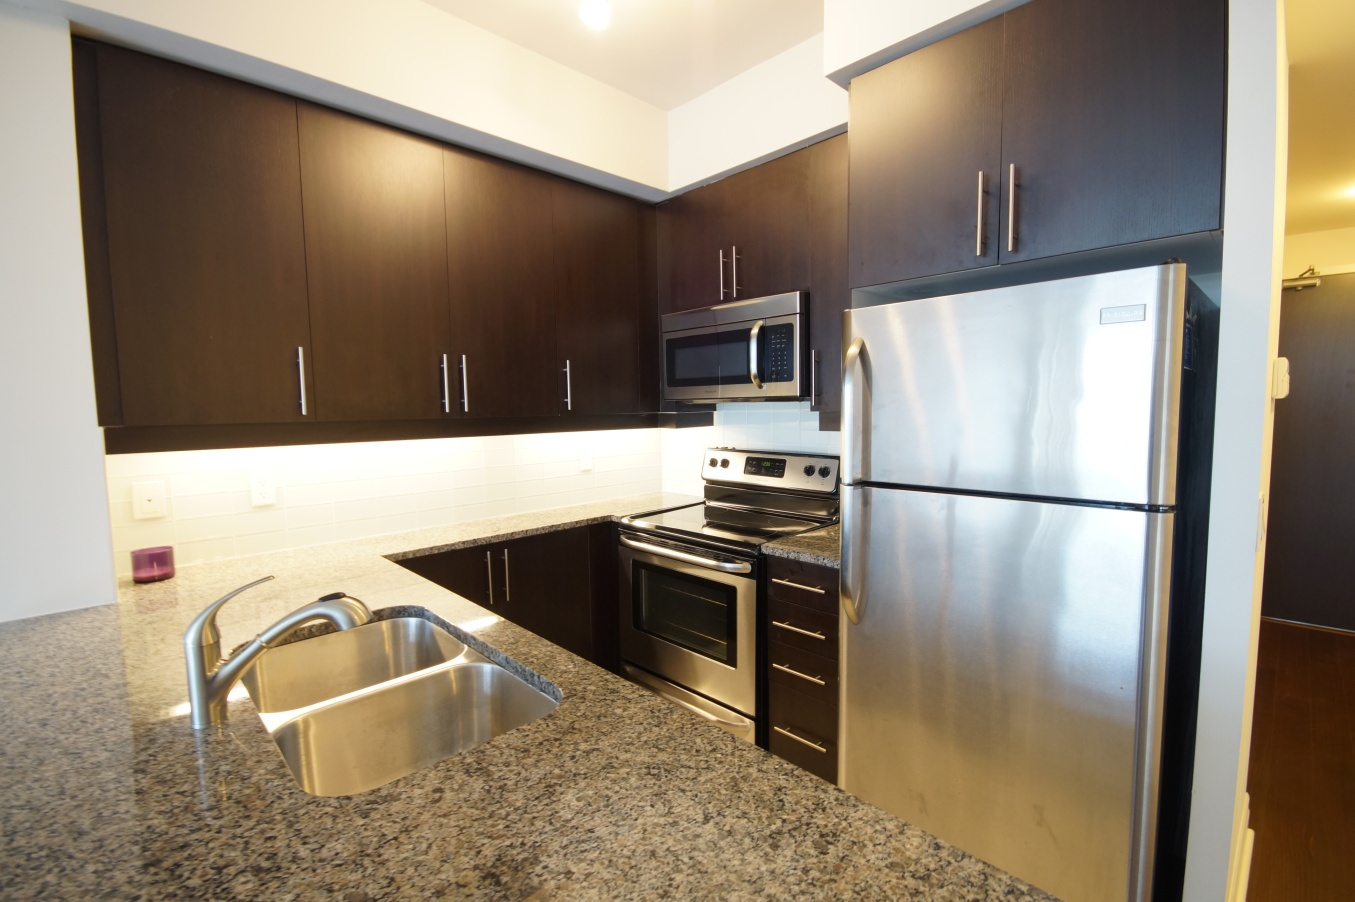 Condo for rent at 8130 Birchmount Rd, Markham, ON. This is the kitchen with stainless steel.